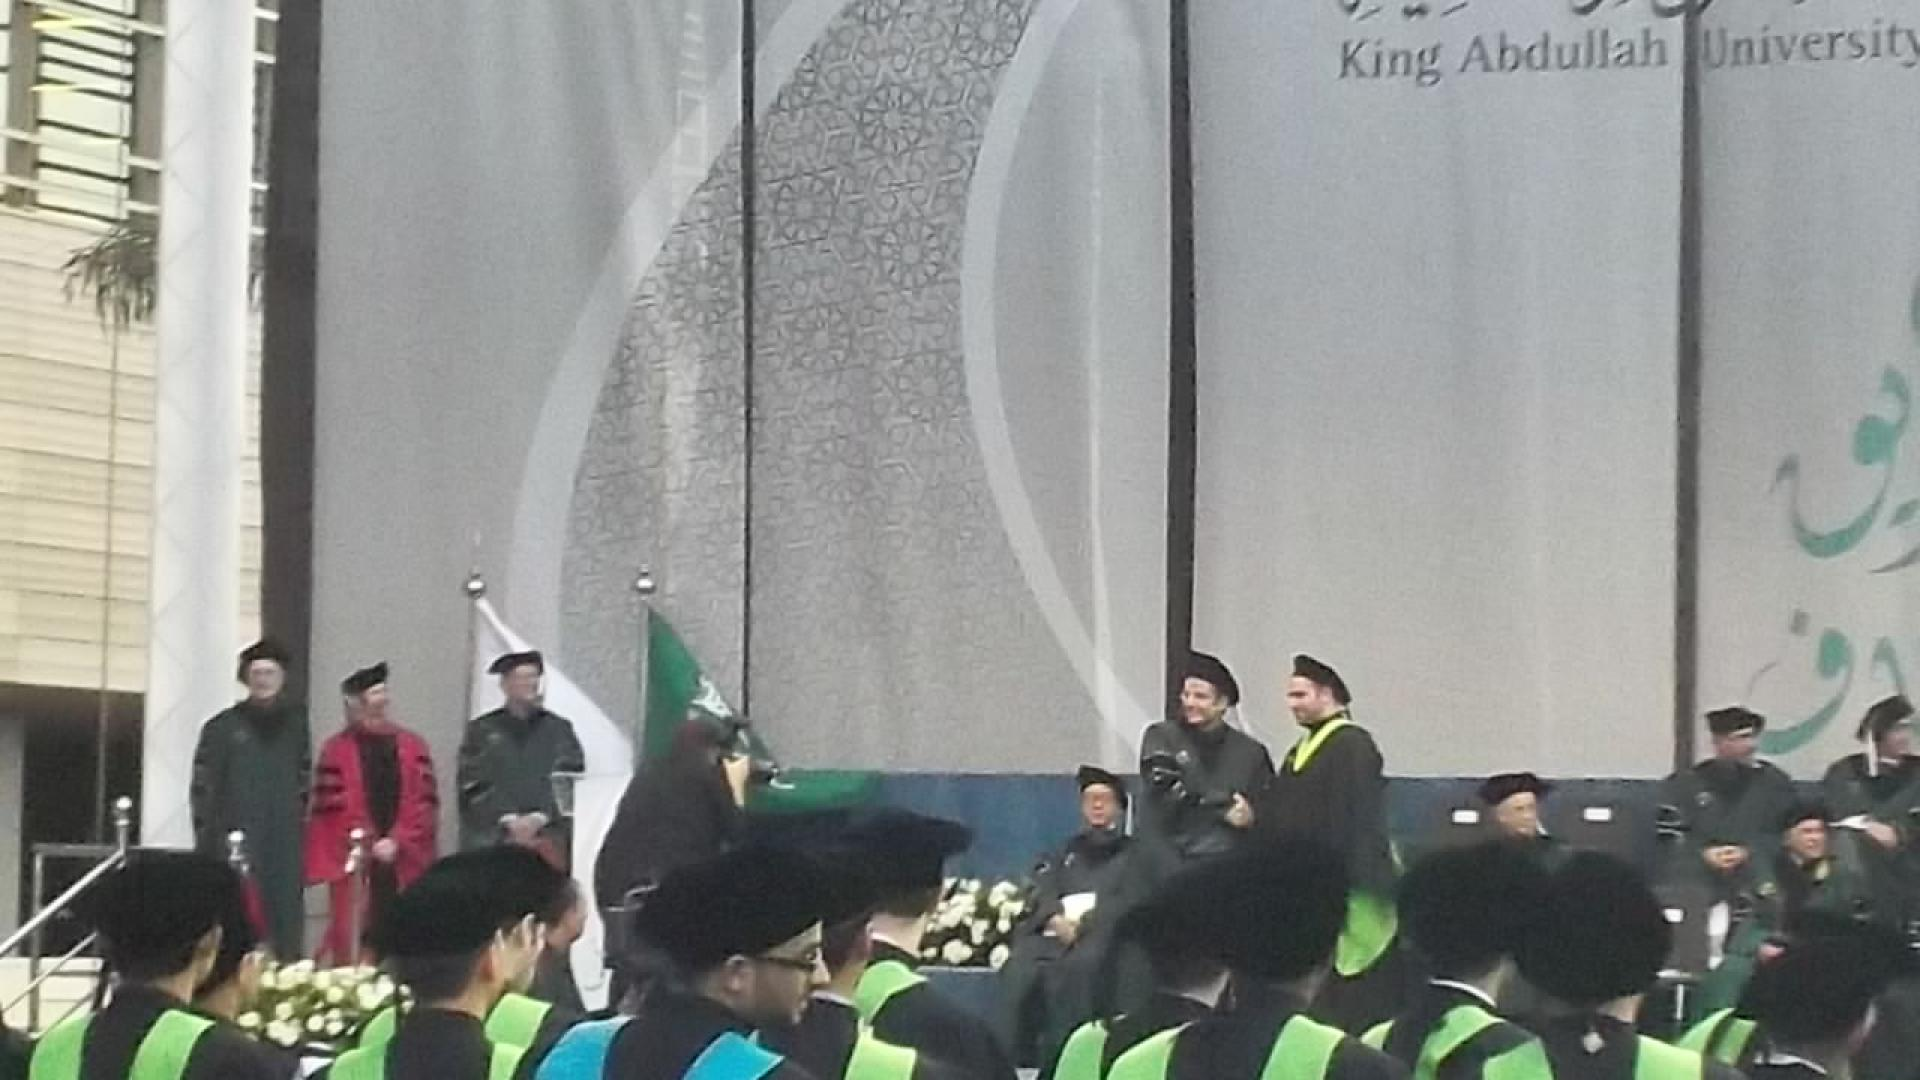 Fakhreddine Gaaloul Receiving Degree From Professor Mohamed-Slim Alouini on His Graduation